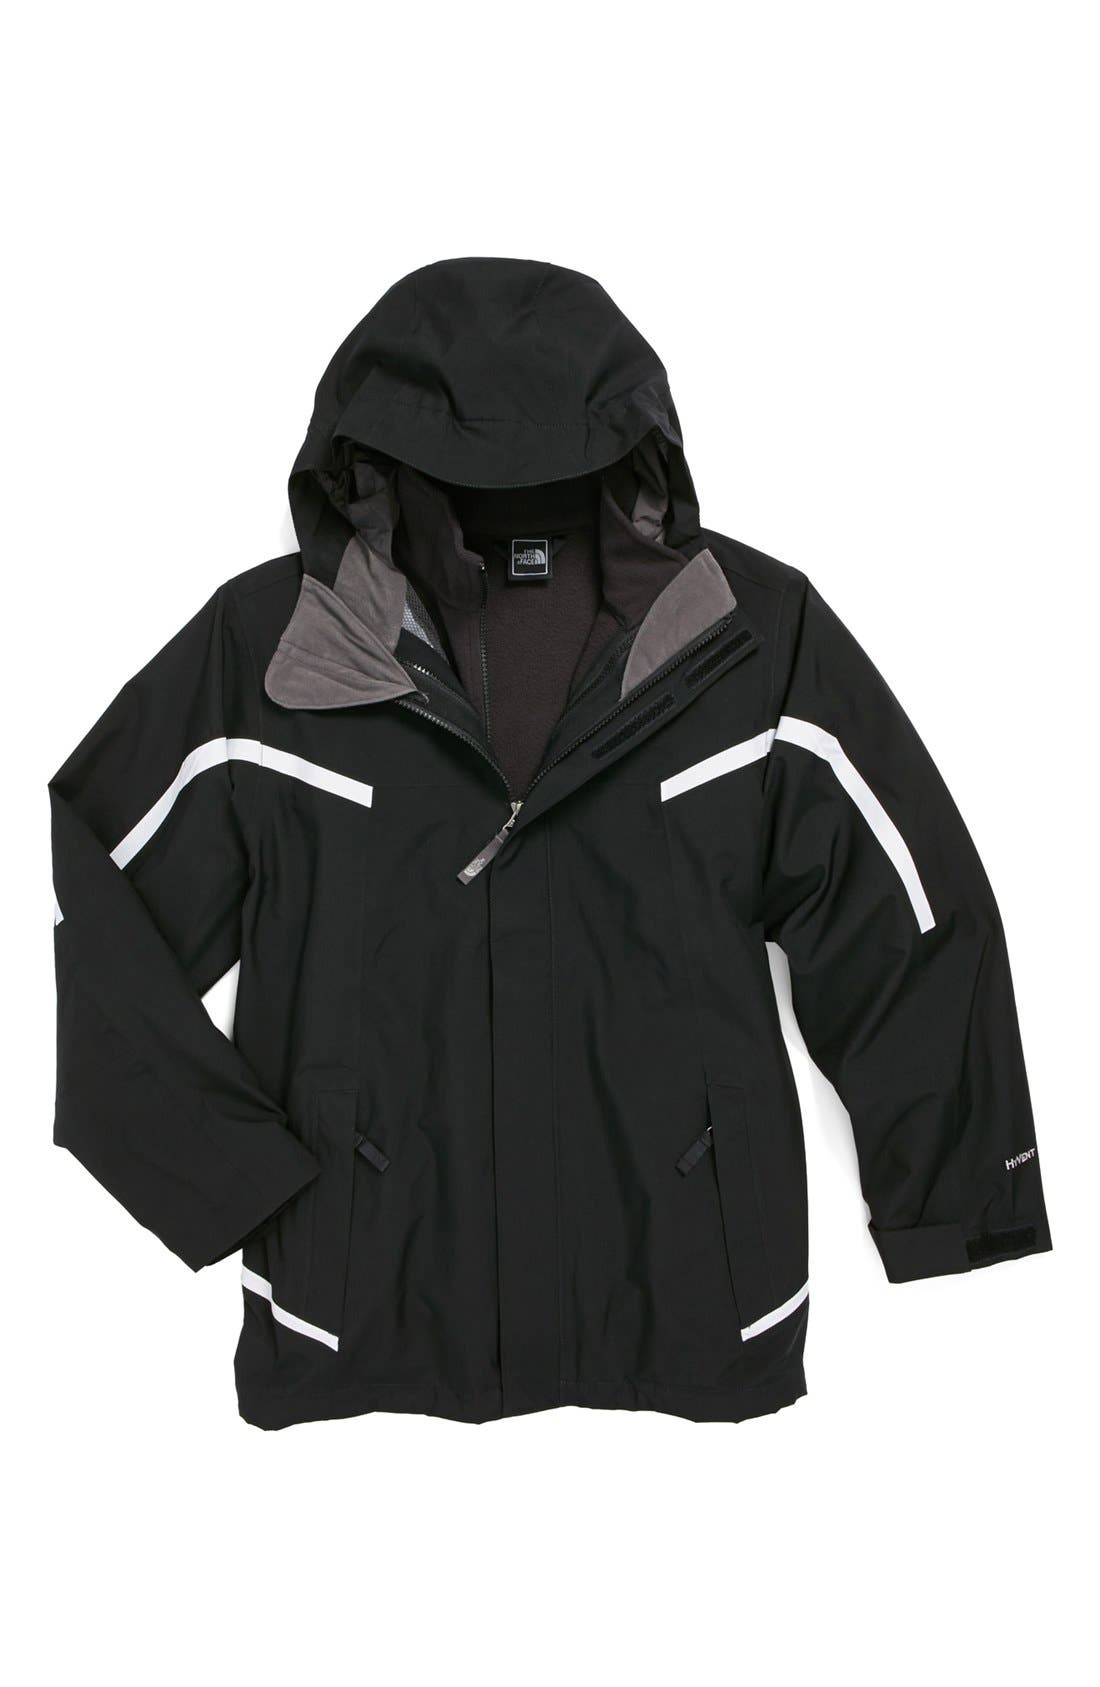 Alternate Image 1 Selected - The North Face 'Nimbostratus - TriClimate®' Jacket (Toddler Boys, Little Boys & Big Boys)